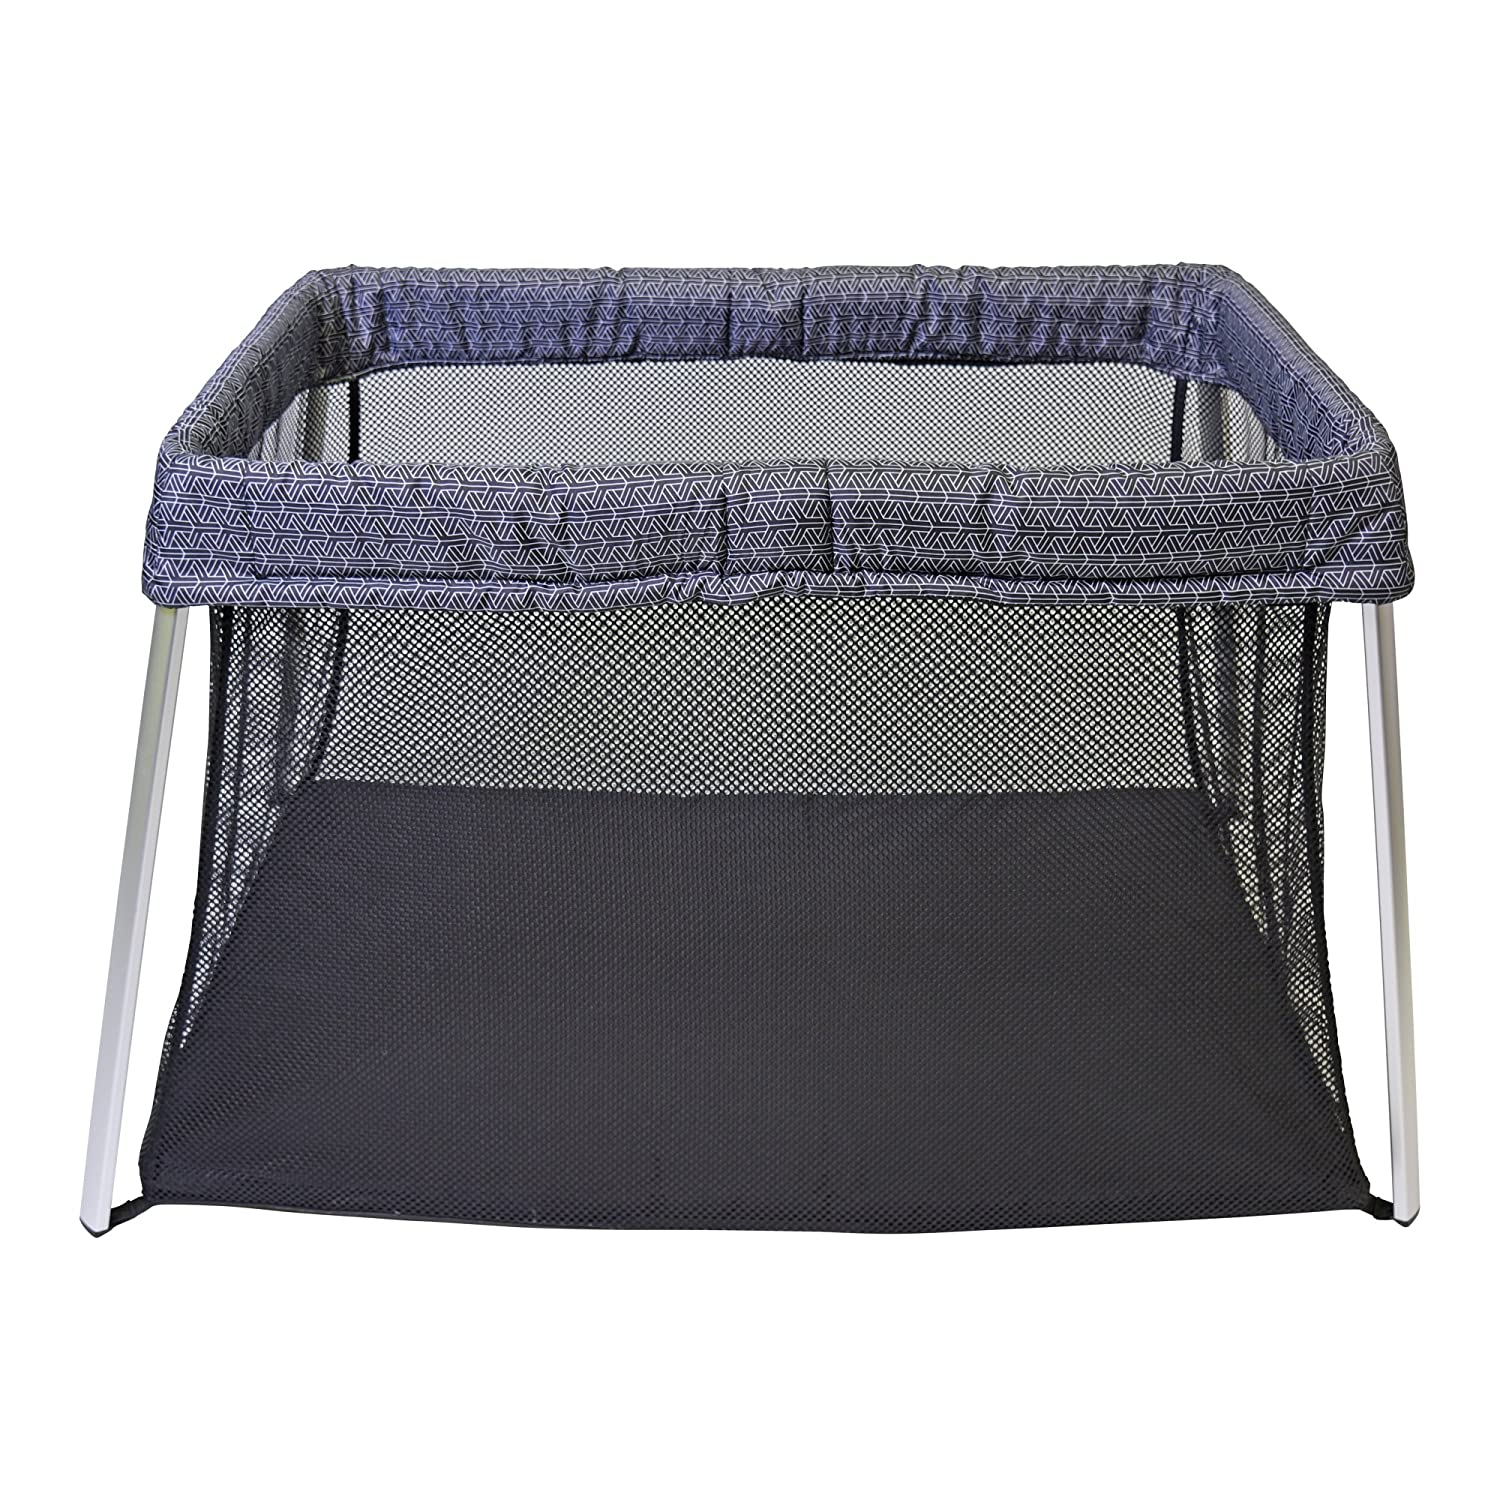 Cosco Easy Go Travel Playard - Phantom Black Dorel Juvenile Canada 05575CPHB